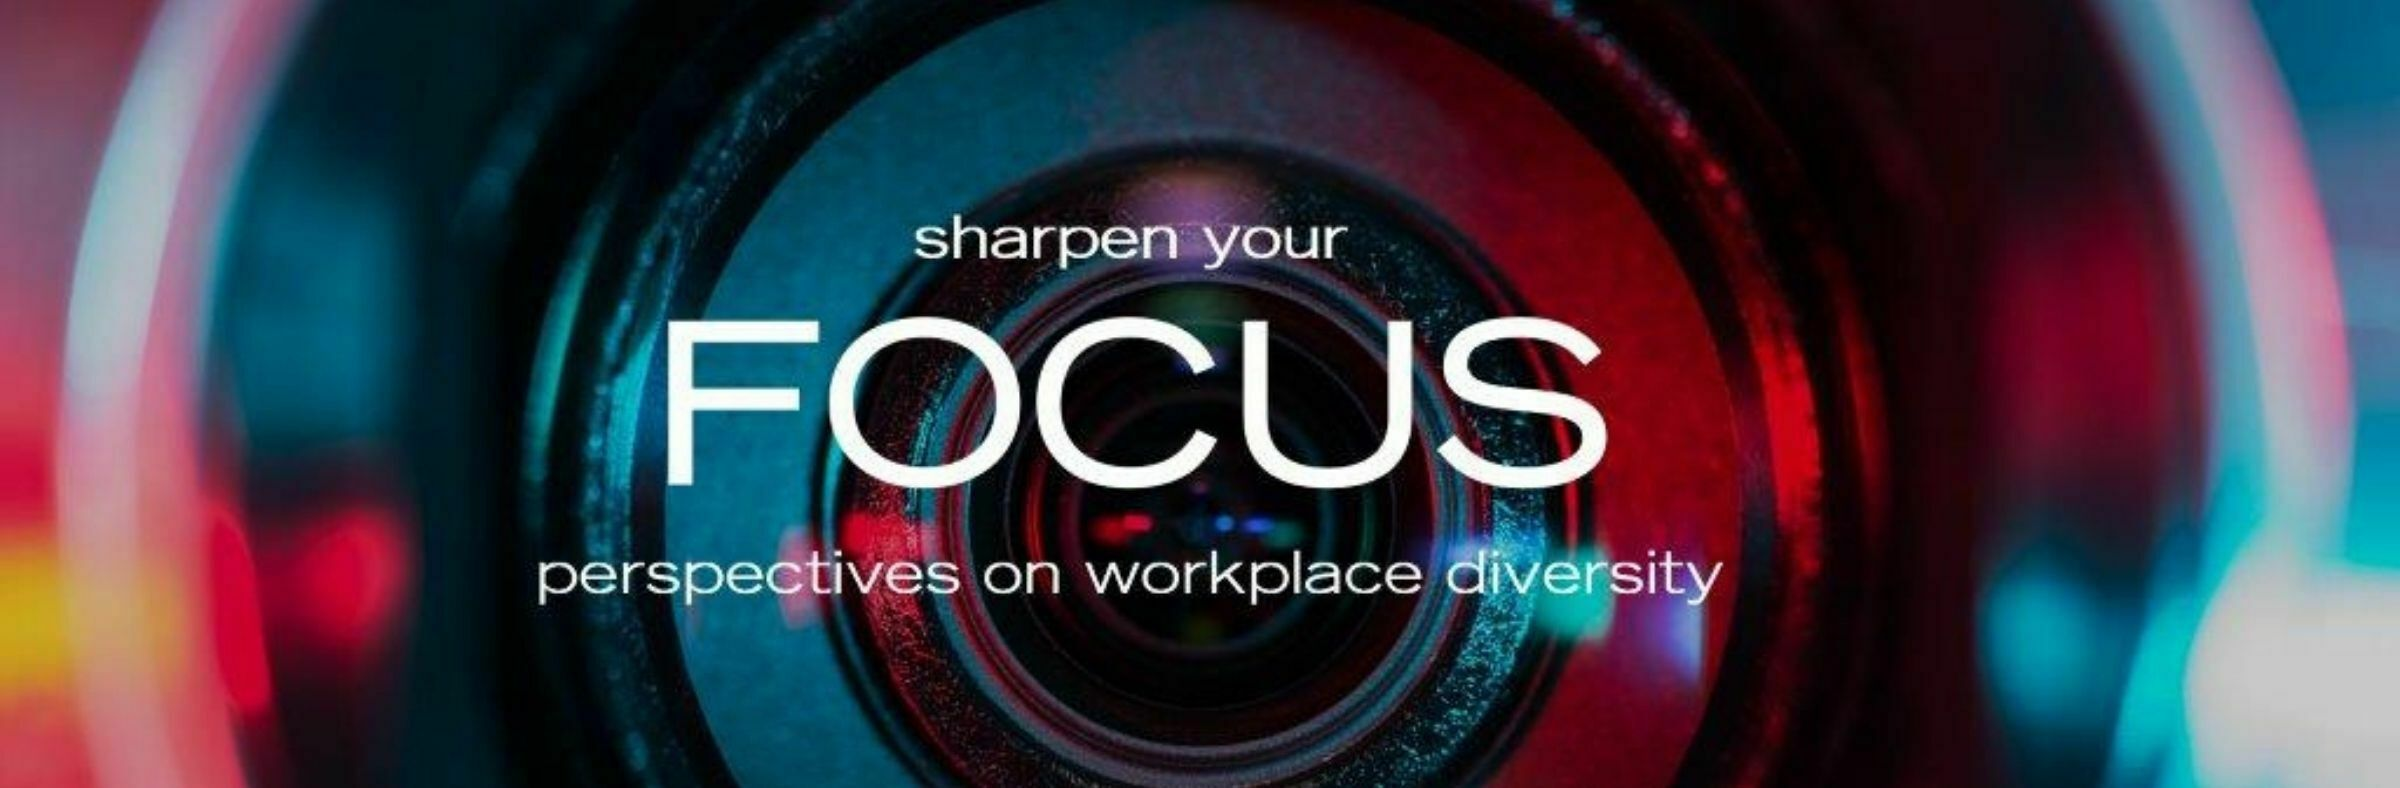 FOCUS Women Leaders in the Workplace